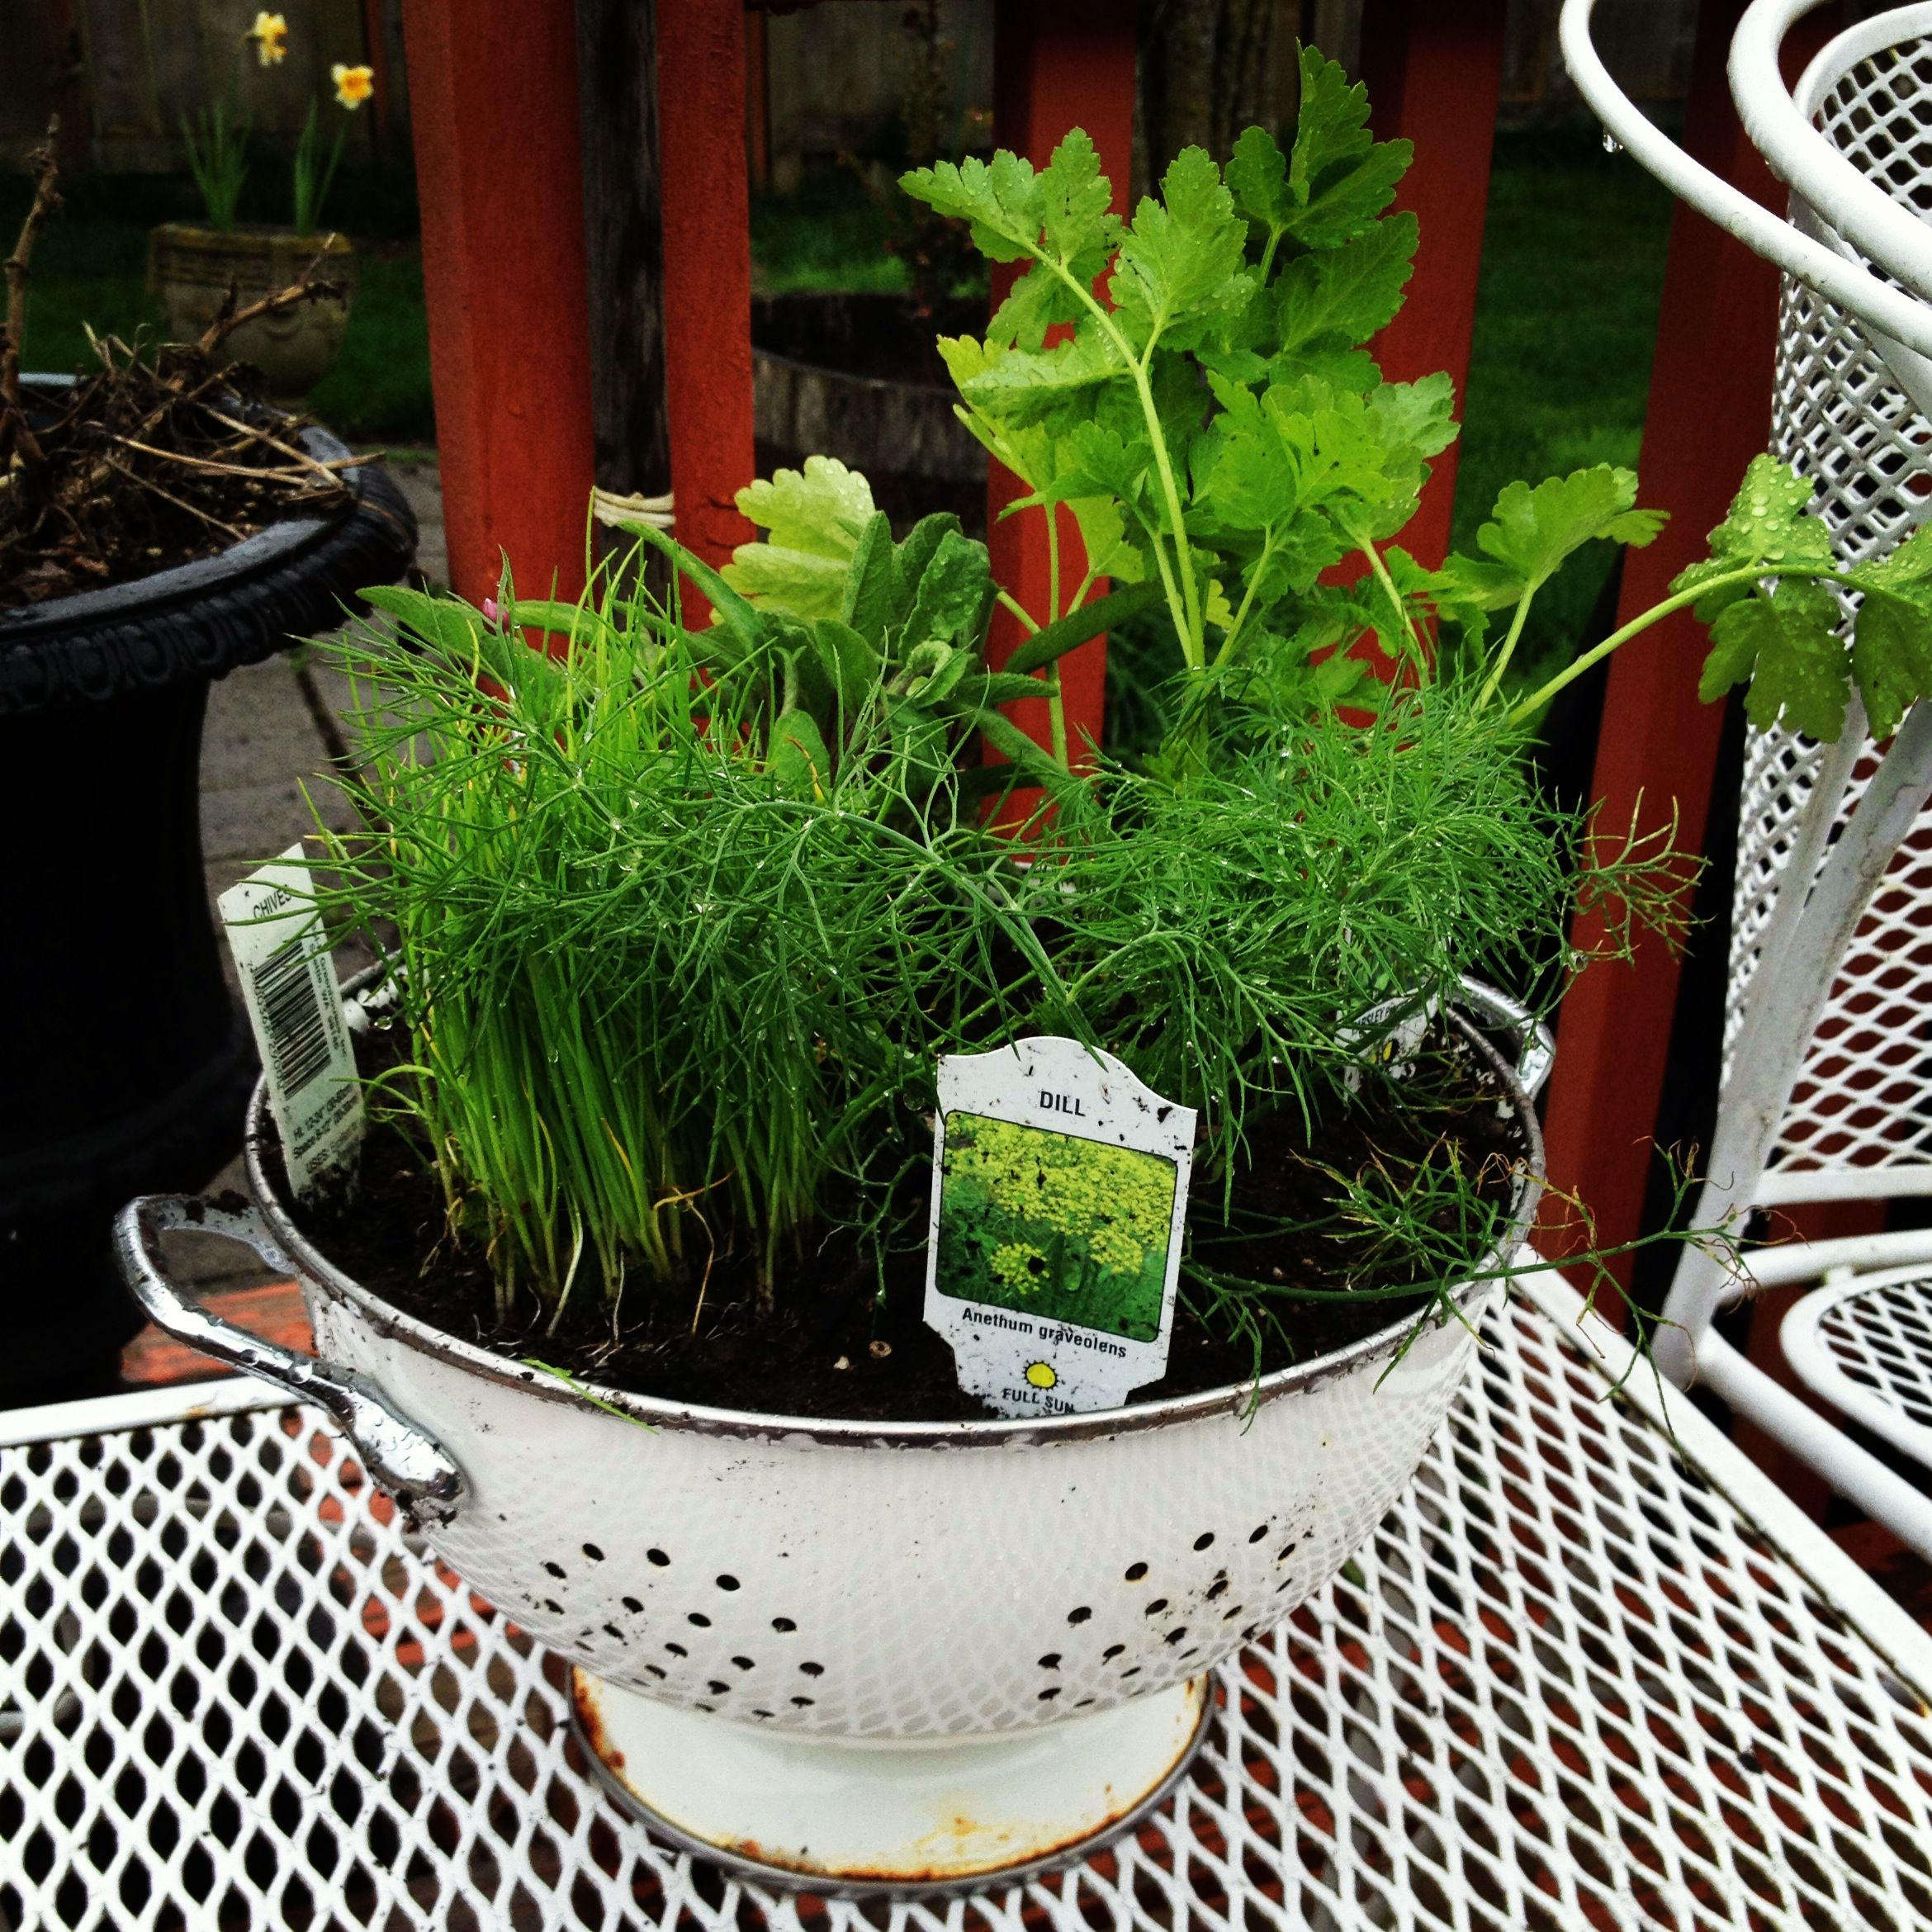 Kitchen Herb Gardens That Will Make Cooking Wonderful: Plant Herbs In A Colander And Set Out On The Deck. I Love